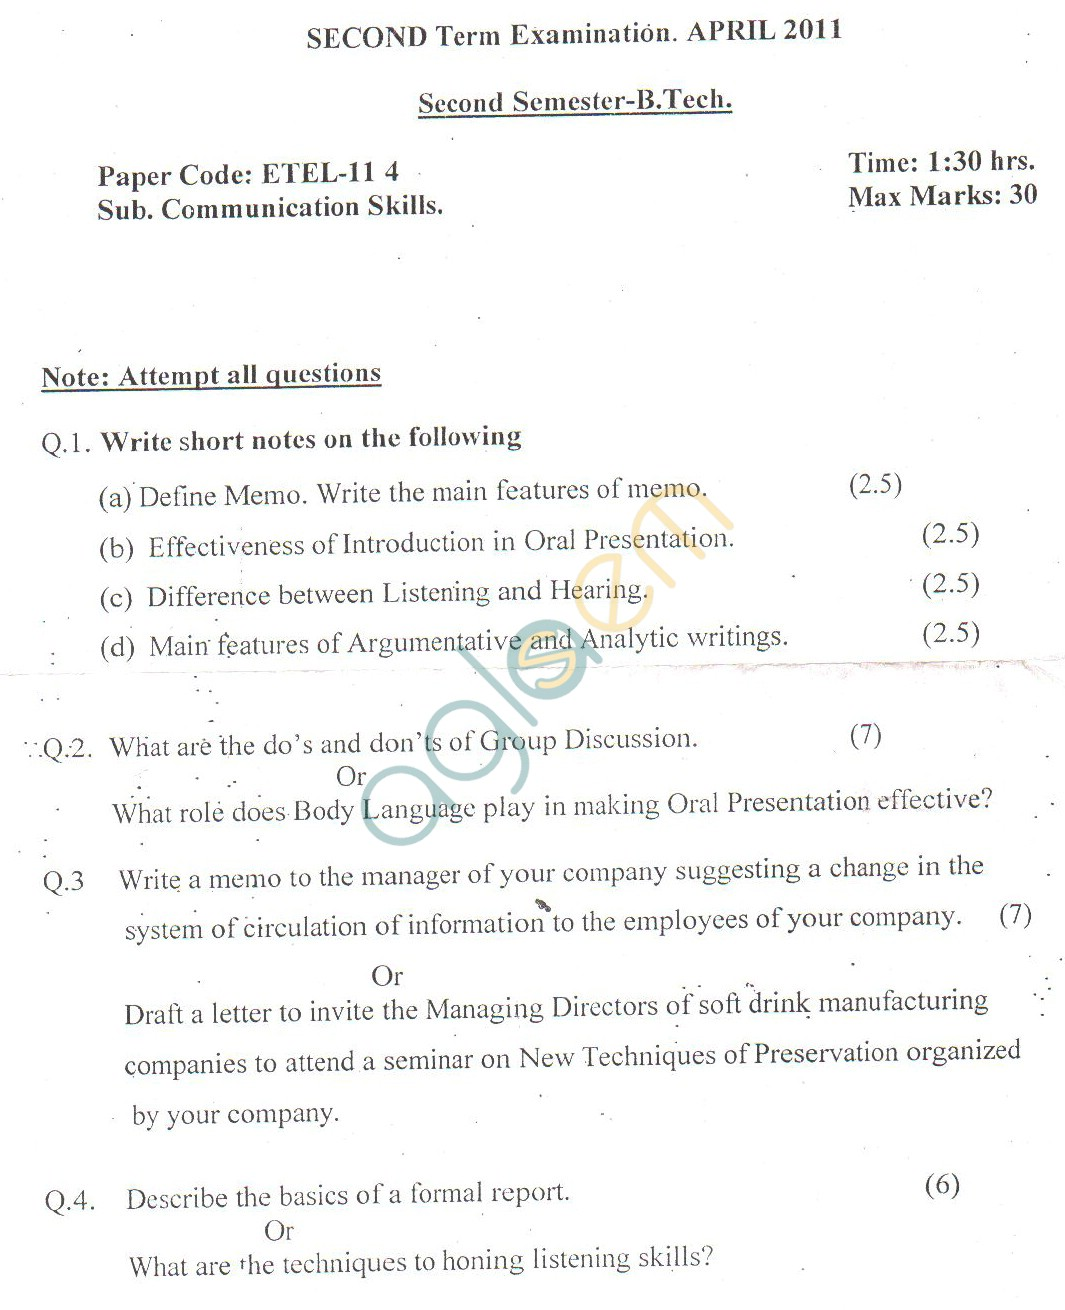 GGSIPU Question Papers Second Semester – Second Term 2011 – ETEL-114